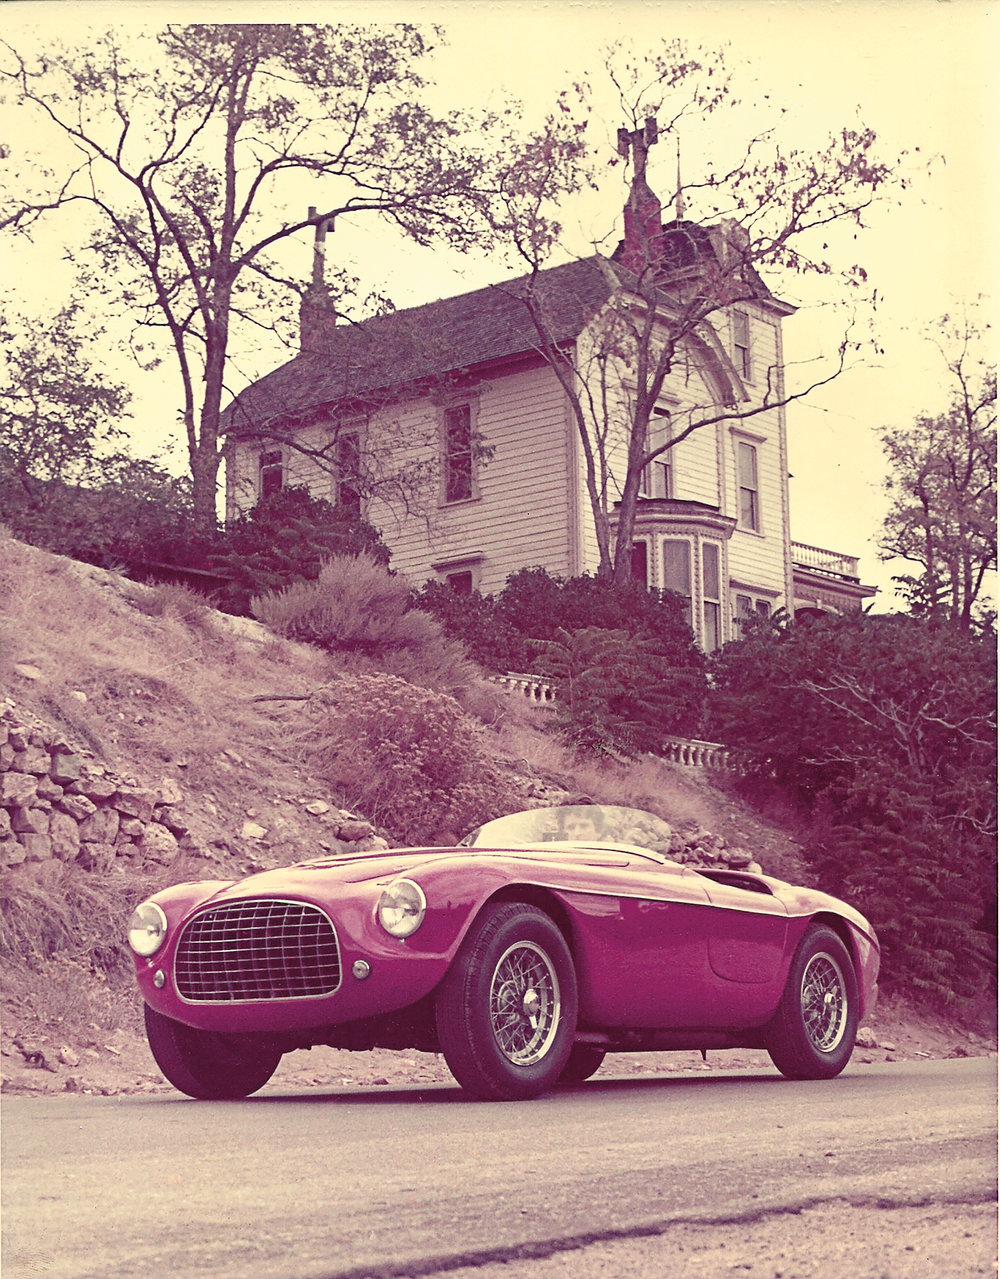 Griswold's first Ferrari, a 212 Export Barchetta No. 0158ED. The car was the winner at Pebble Beach of the Hans Tanner Trophy, with a third overall in the first Monterey Historic Grand Prix the day before.